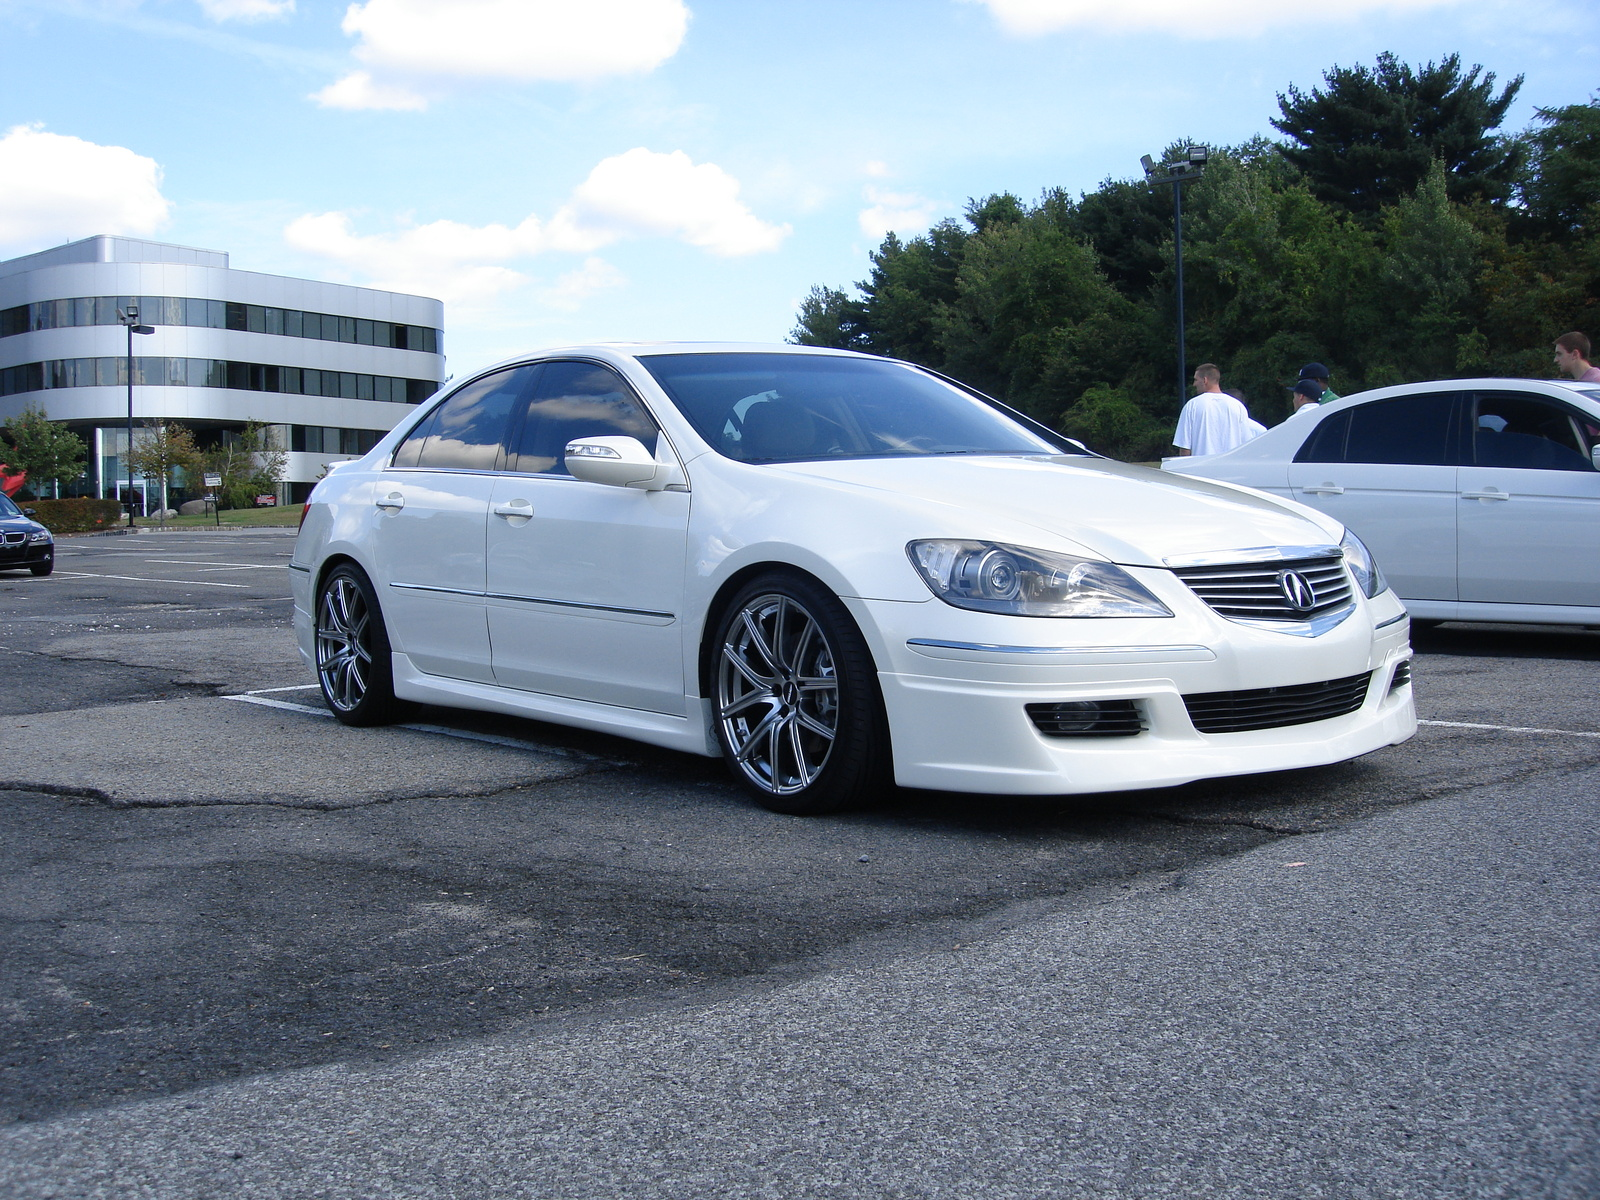 2006 Acura RL - Pictures - 2006 Acura RL 3.5L AWD w/Navi ...